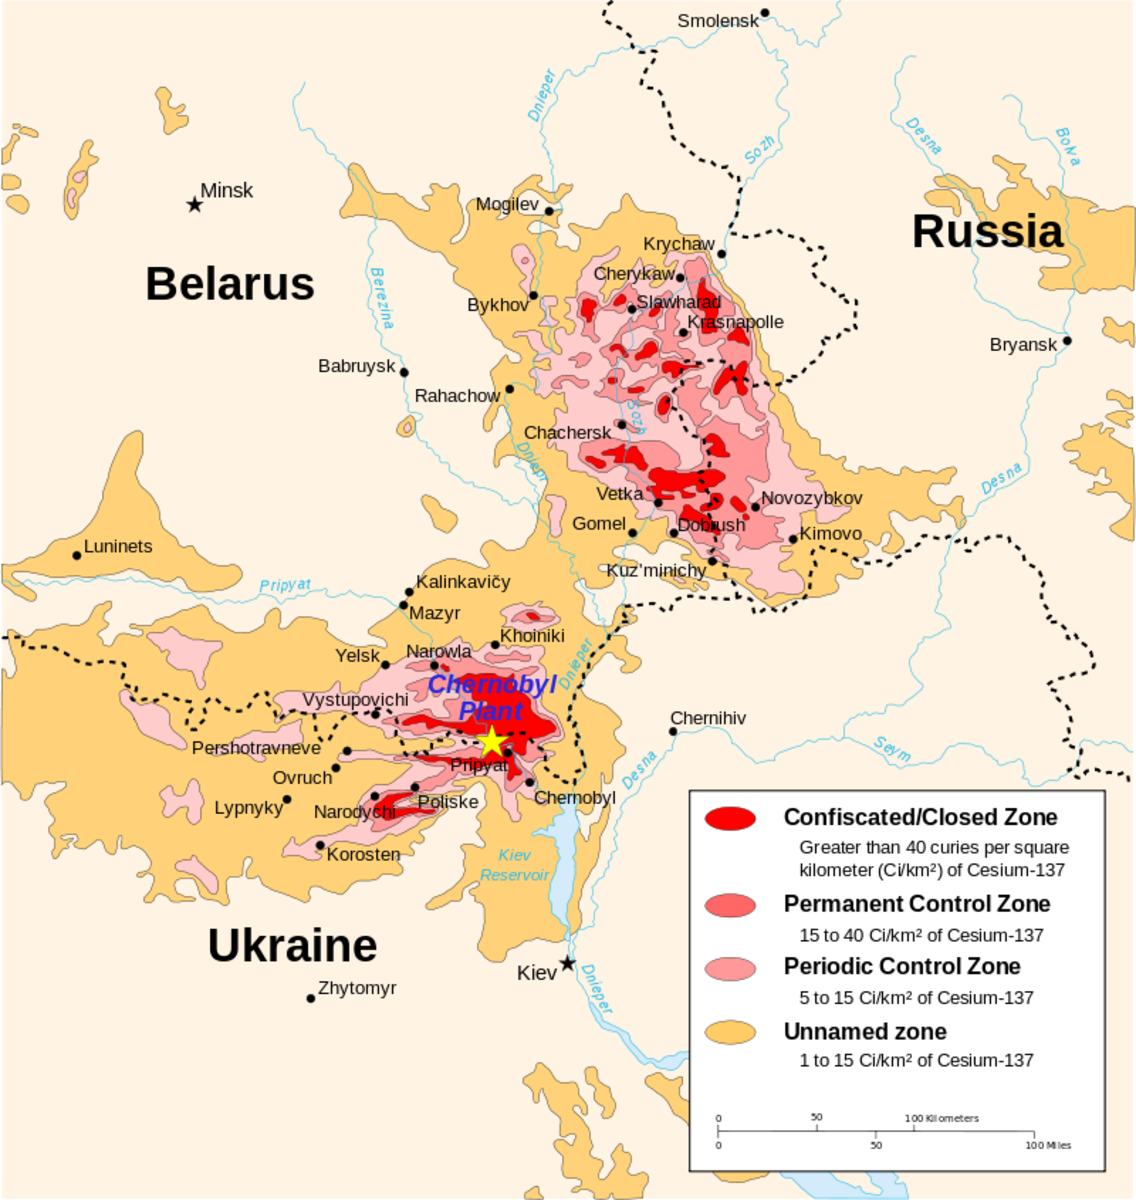 Map of Chernobyl's Radiation Zones. Notice how pockets of radiation were carried away from ground zero.